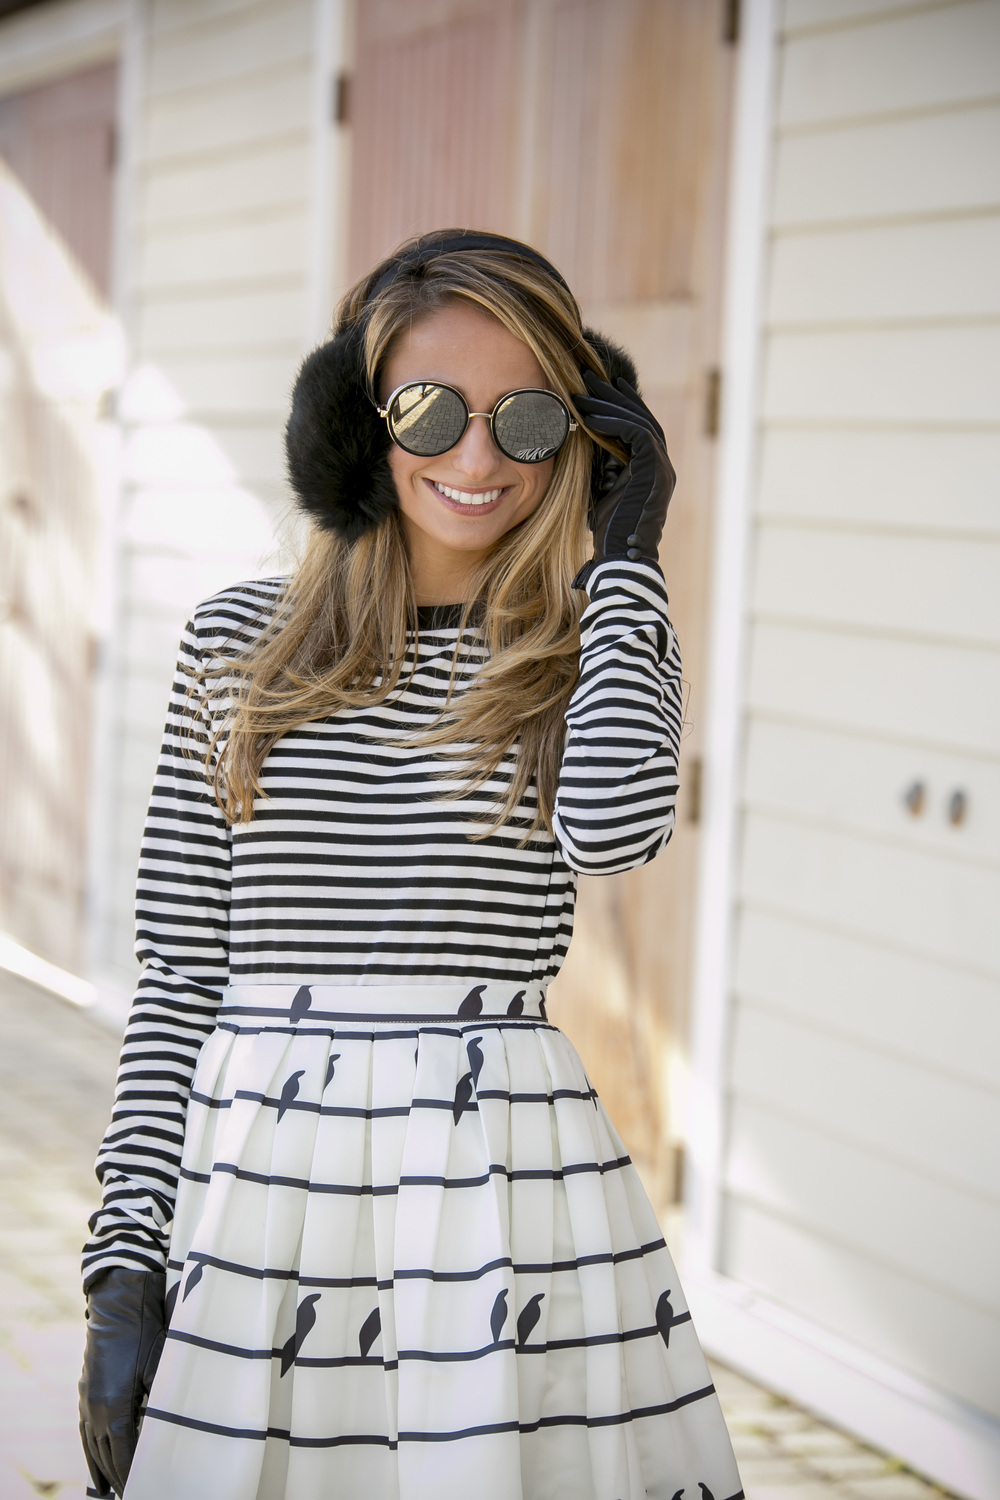 Lauren Recchia winter style wearing Topshop, Chicwish, J.Crew, and Jimmy Choo